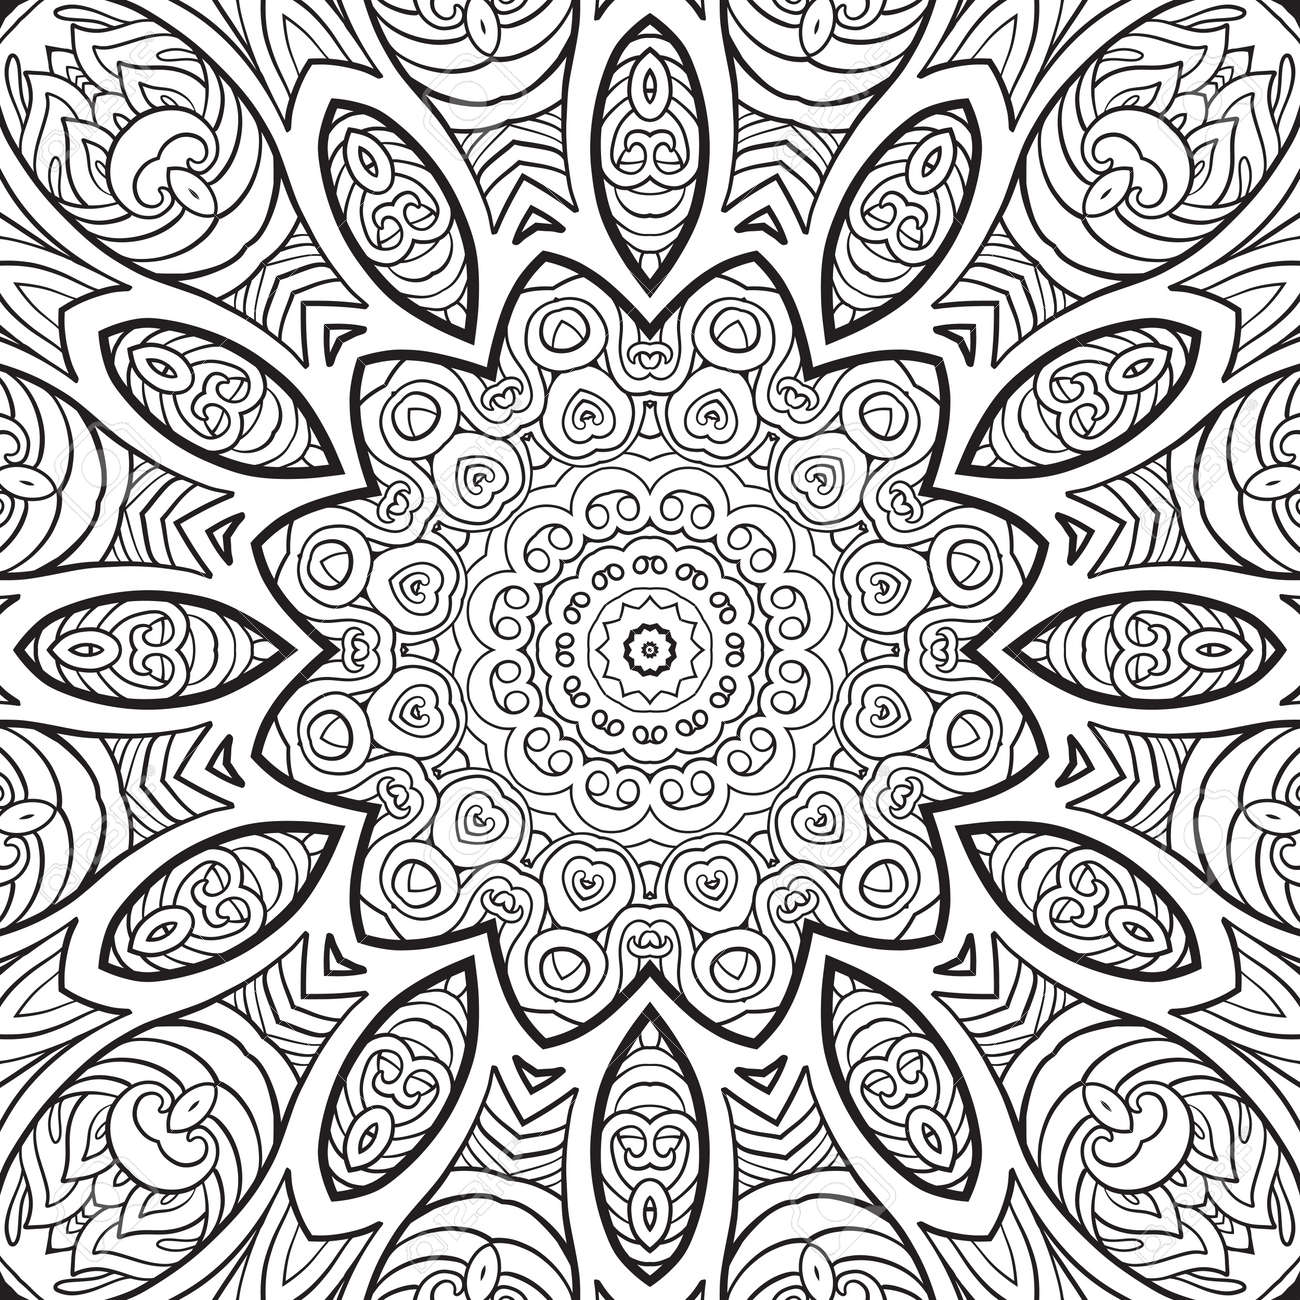 seamless pattern. Outline hand drawing. Good for coloring page for the adult coloring book. Stock vector illustration.Abstract vector decorative ethnic mandala black and white - 111921655